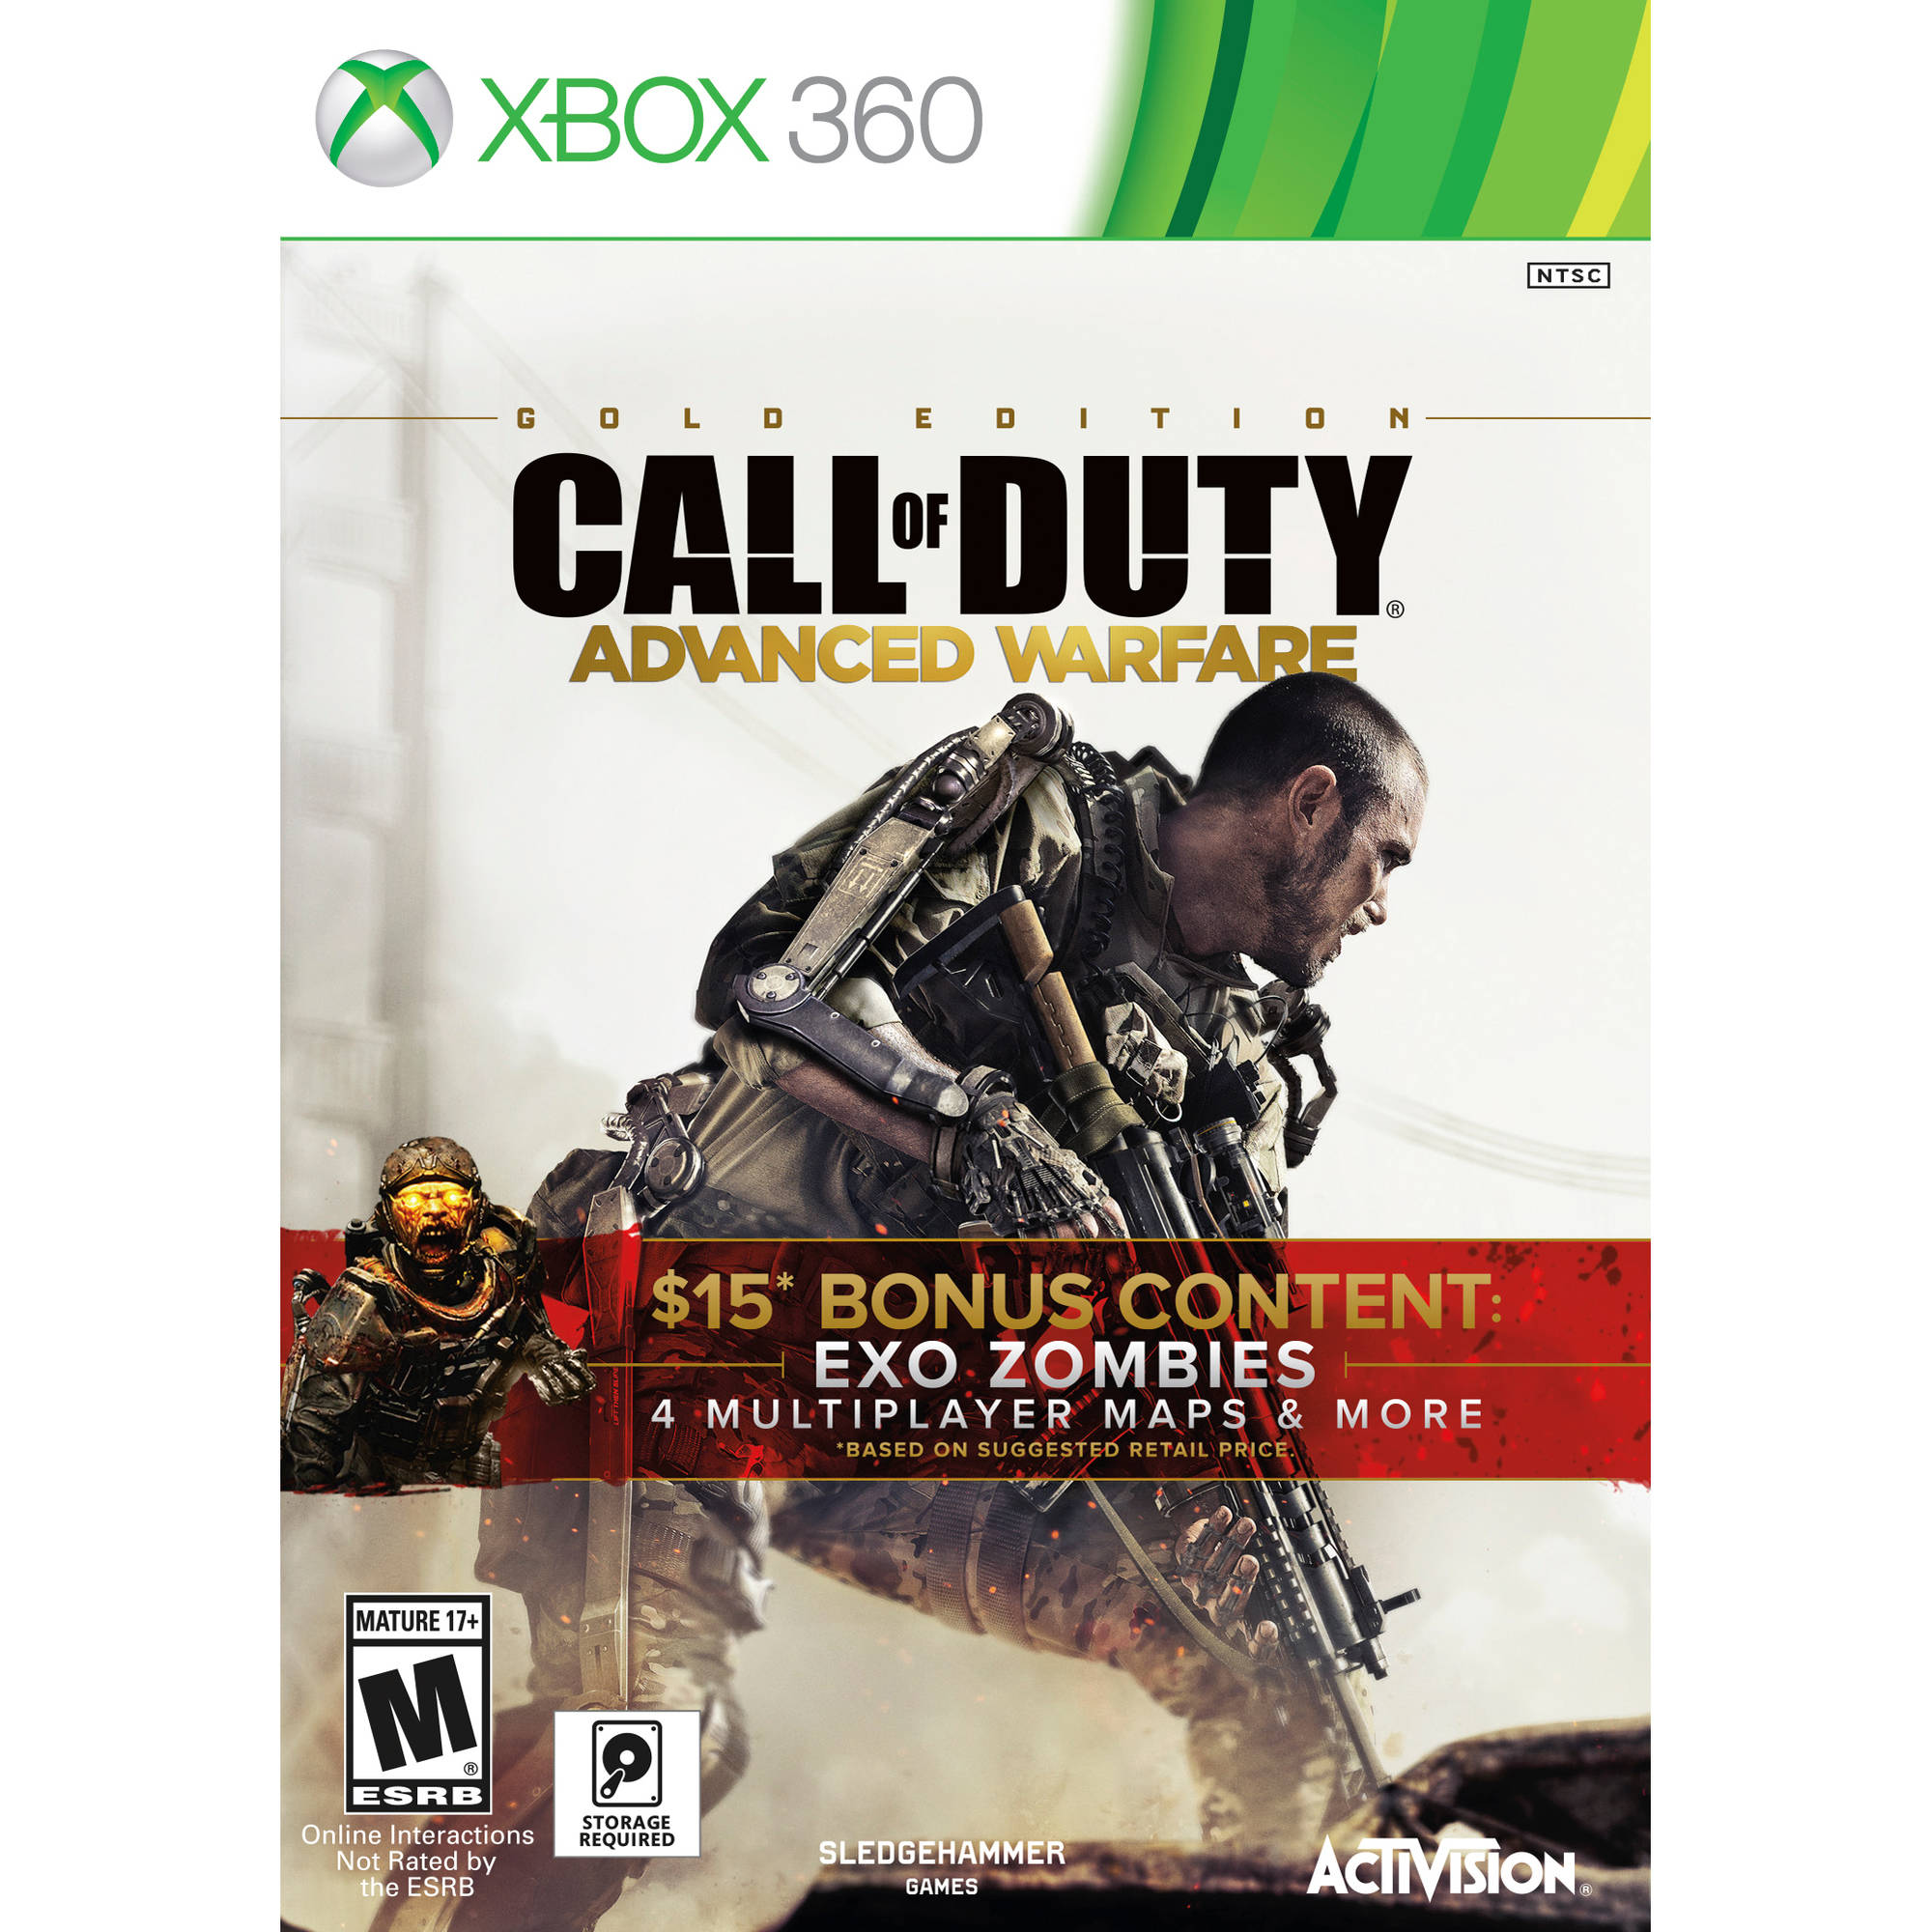 Xbox 360 call of duty: world at war savegame game save download file.